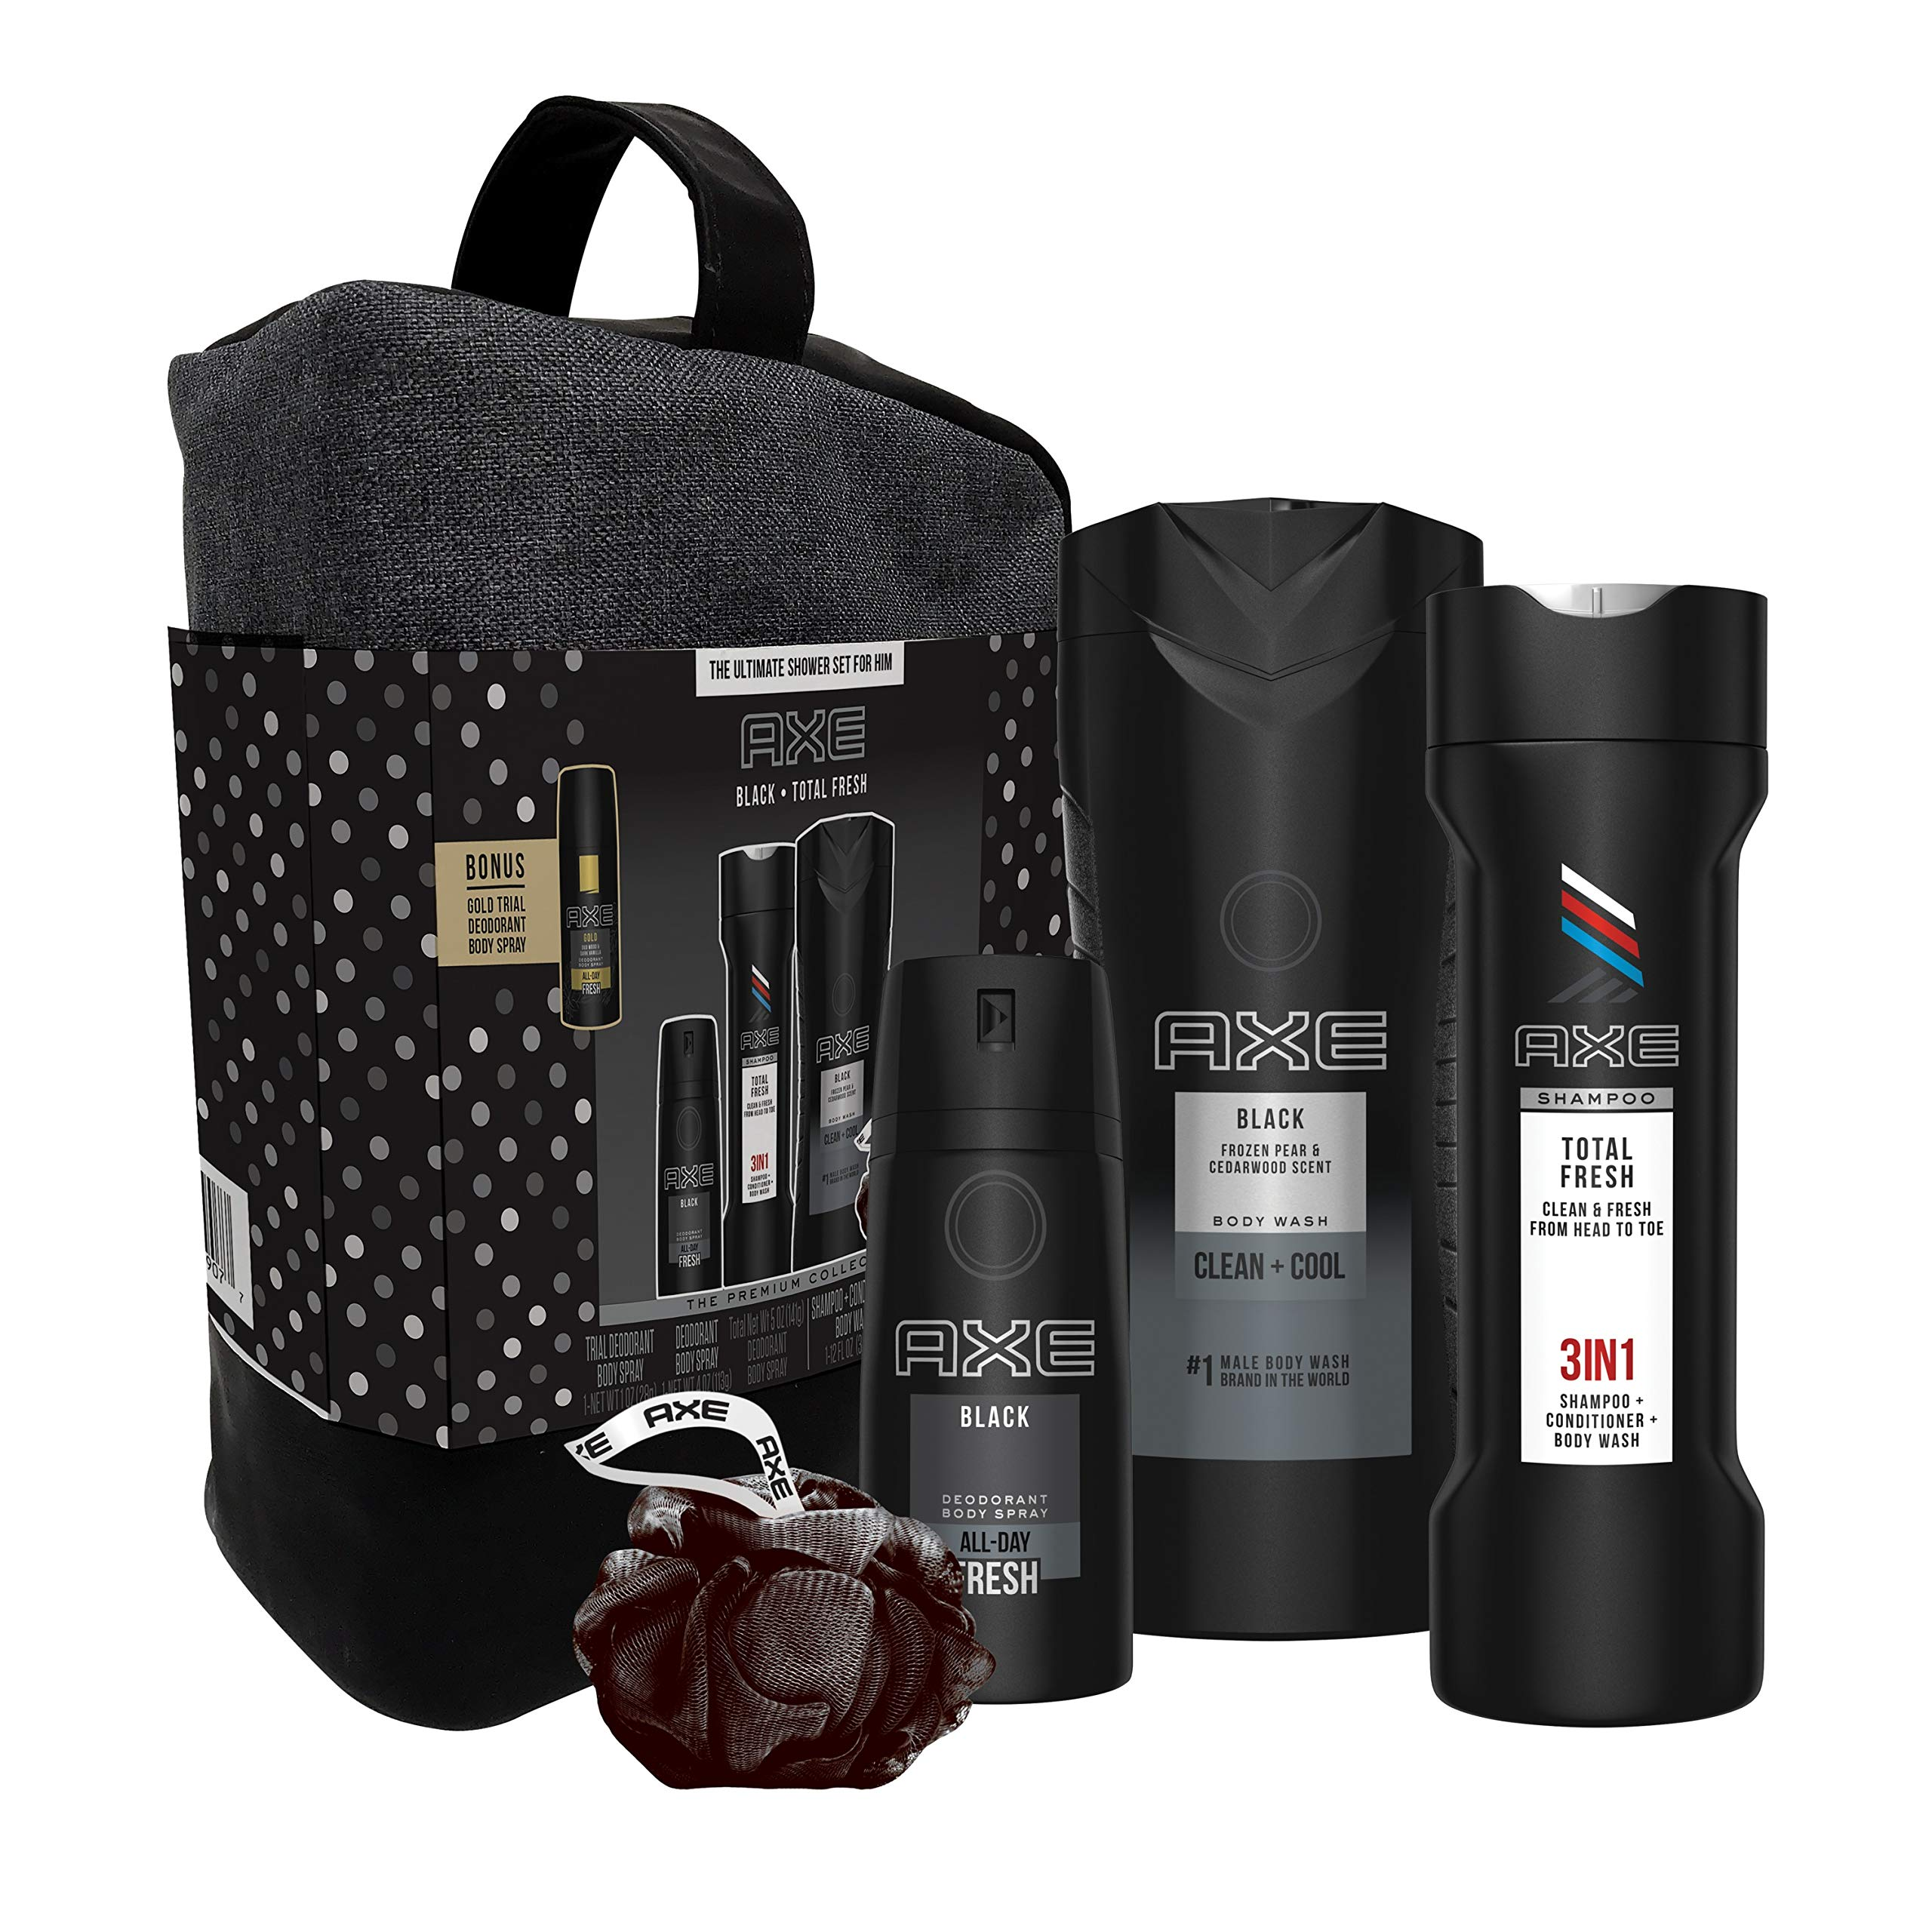 AXE 6-Pc Black & Fresh Shower Gift Set with BONUS Trial Deo Body Spray (Body Spray, Body Wash, 3 in 1 Shampoo + Conditioner + Body Wash, Shower Bag, Pouf) by AXE